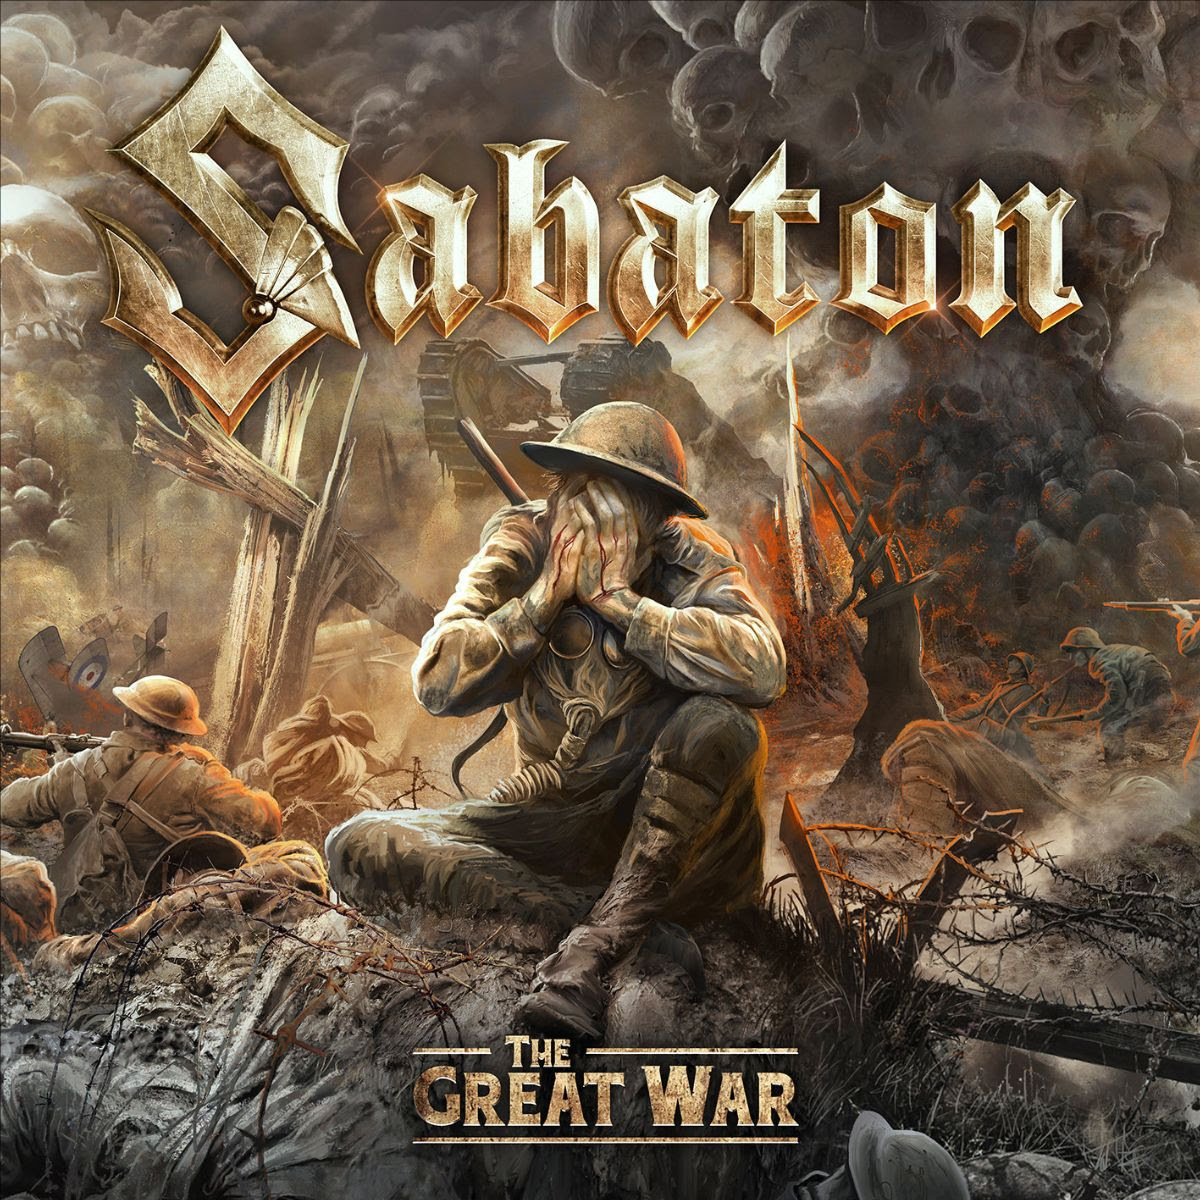 """The long wait is finally over: Today, the Swedish Metal Giants  SABATON  release their new album,   titled   The Great War  . To celebrate the occasion, they also unveil a stunning new lyric video for the song """" 82nd All The Way .""""  The lyric video will premiere on YouTube on Saturday at 11:00AM PT / 2:00PM ET. Login and set a reminder by clicking the bell:   https://www.youtube.com/watch?v=0LS0Z8fgiII     Pär Sundström  states:  """"We felt directly when we had recorded the album that the song """"82nd All the Way"""" was one of the absolutely strongest songs. It's why we selected this song to be representing the album release. It's fun to play, fun to listen to and for sure it will be a part of the setlist for upcoming shows for a very long time.""""   Get your copy of   The Great War   here:   http://www.sabaton.net/thegreatwar     The Great War   is now available on all digital music platforms. Listen now:   http://geni.us/SabatonTGWStandard    Get the song """" Great War""""  digitally here:   http://nblast.de/SabatonGreatWar   Listen in NB New Releases playlist:   http://nblast.de/SpotifyNewReleases   /  http://nblast.de/AppleMusicNewReleases    The release of  SABATON's  ninth full-length record perfectly coincides with the band's 20th anniversary and the concept album is based on events during the First World War. The band started the recordings exactly 100 years after the end of the First World War (11/11/1918) and took 3 months of intensive work to complete the album together with their long term producer and partner  Jonas Kjellgren  at  Black Lounge studios . Furthermore, the album has been mastered by  Maor Appelbaum  and the artwork was once again created by  Peter Sallaí .  """"This is not the first time we have sung about stories from this period in time, but now we felt the timing was right to make a full concept album about this war"""" , explain the band.     The Great War   tracklist: 01. The Future Of Warfare 02. Seven Pillars Of Wisdom 03. 82nd All The Way 04. The Att"""